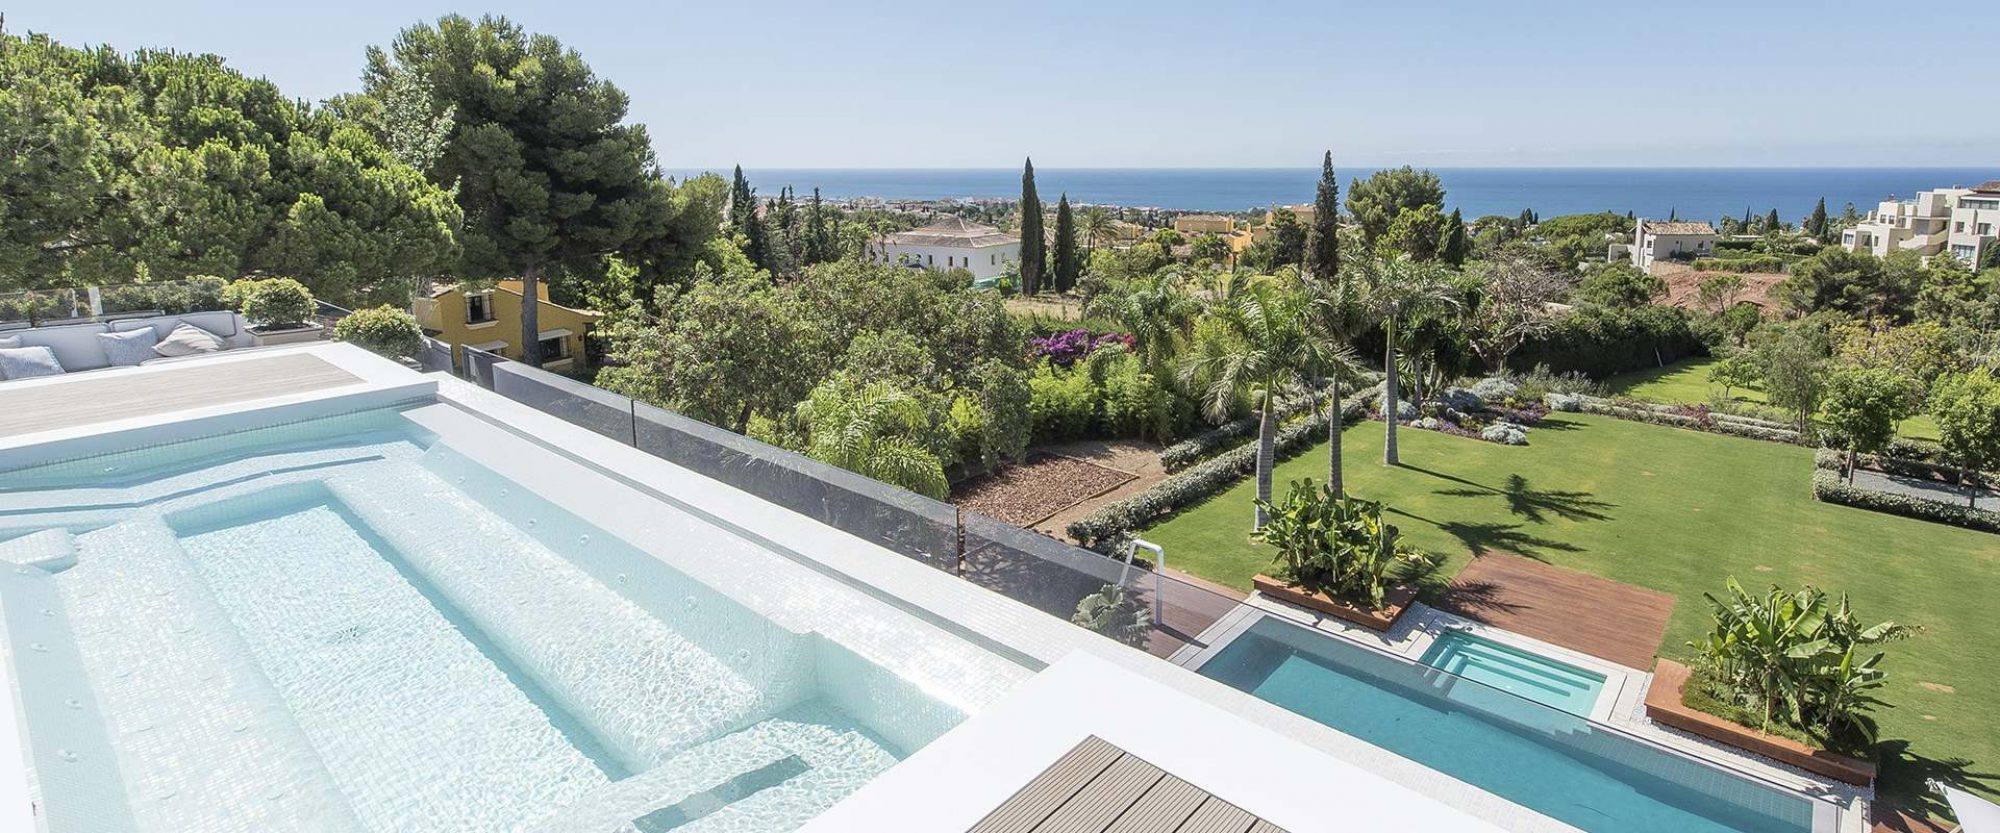 360 degree views from the 11 m custom built roof top jacuzzi and main party jacuzzi area